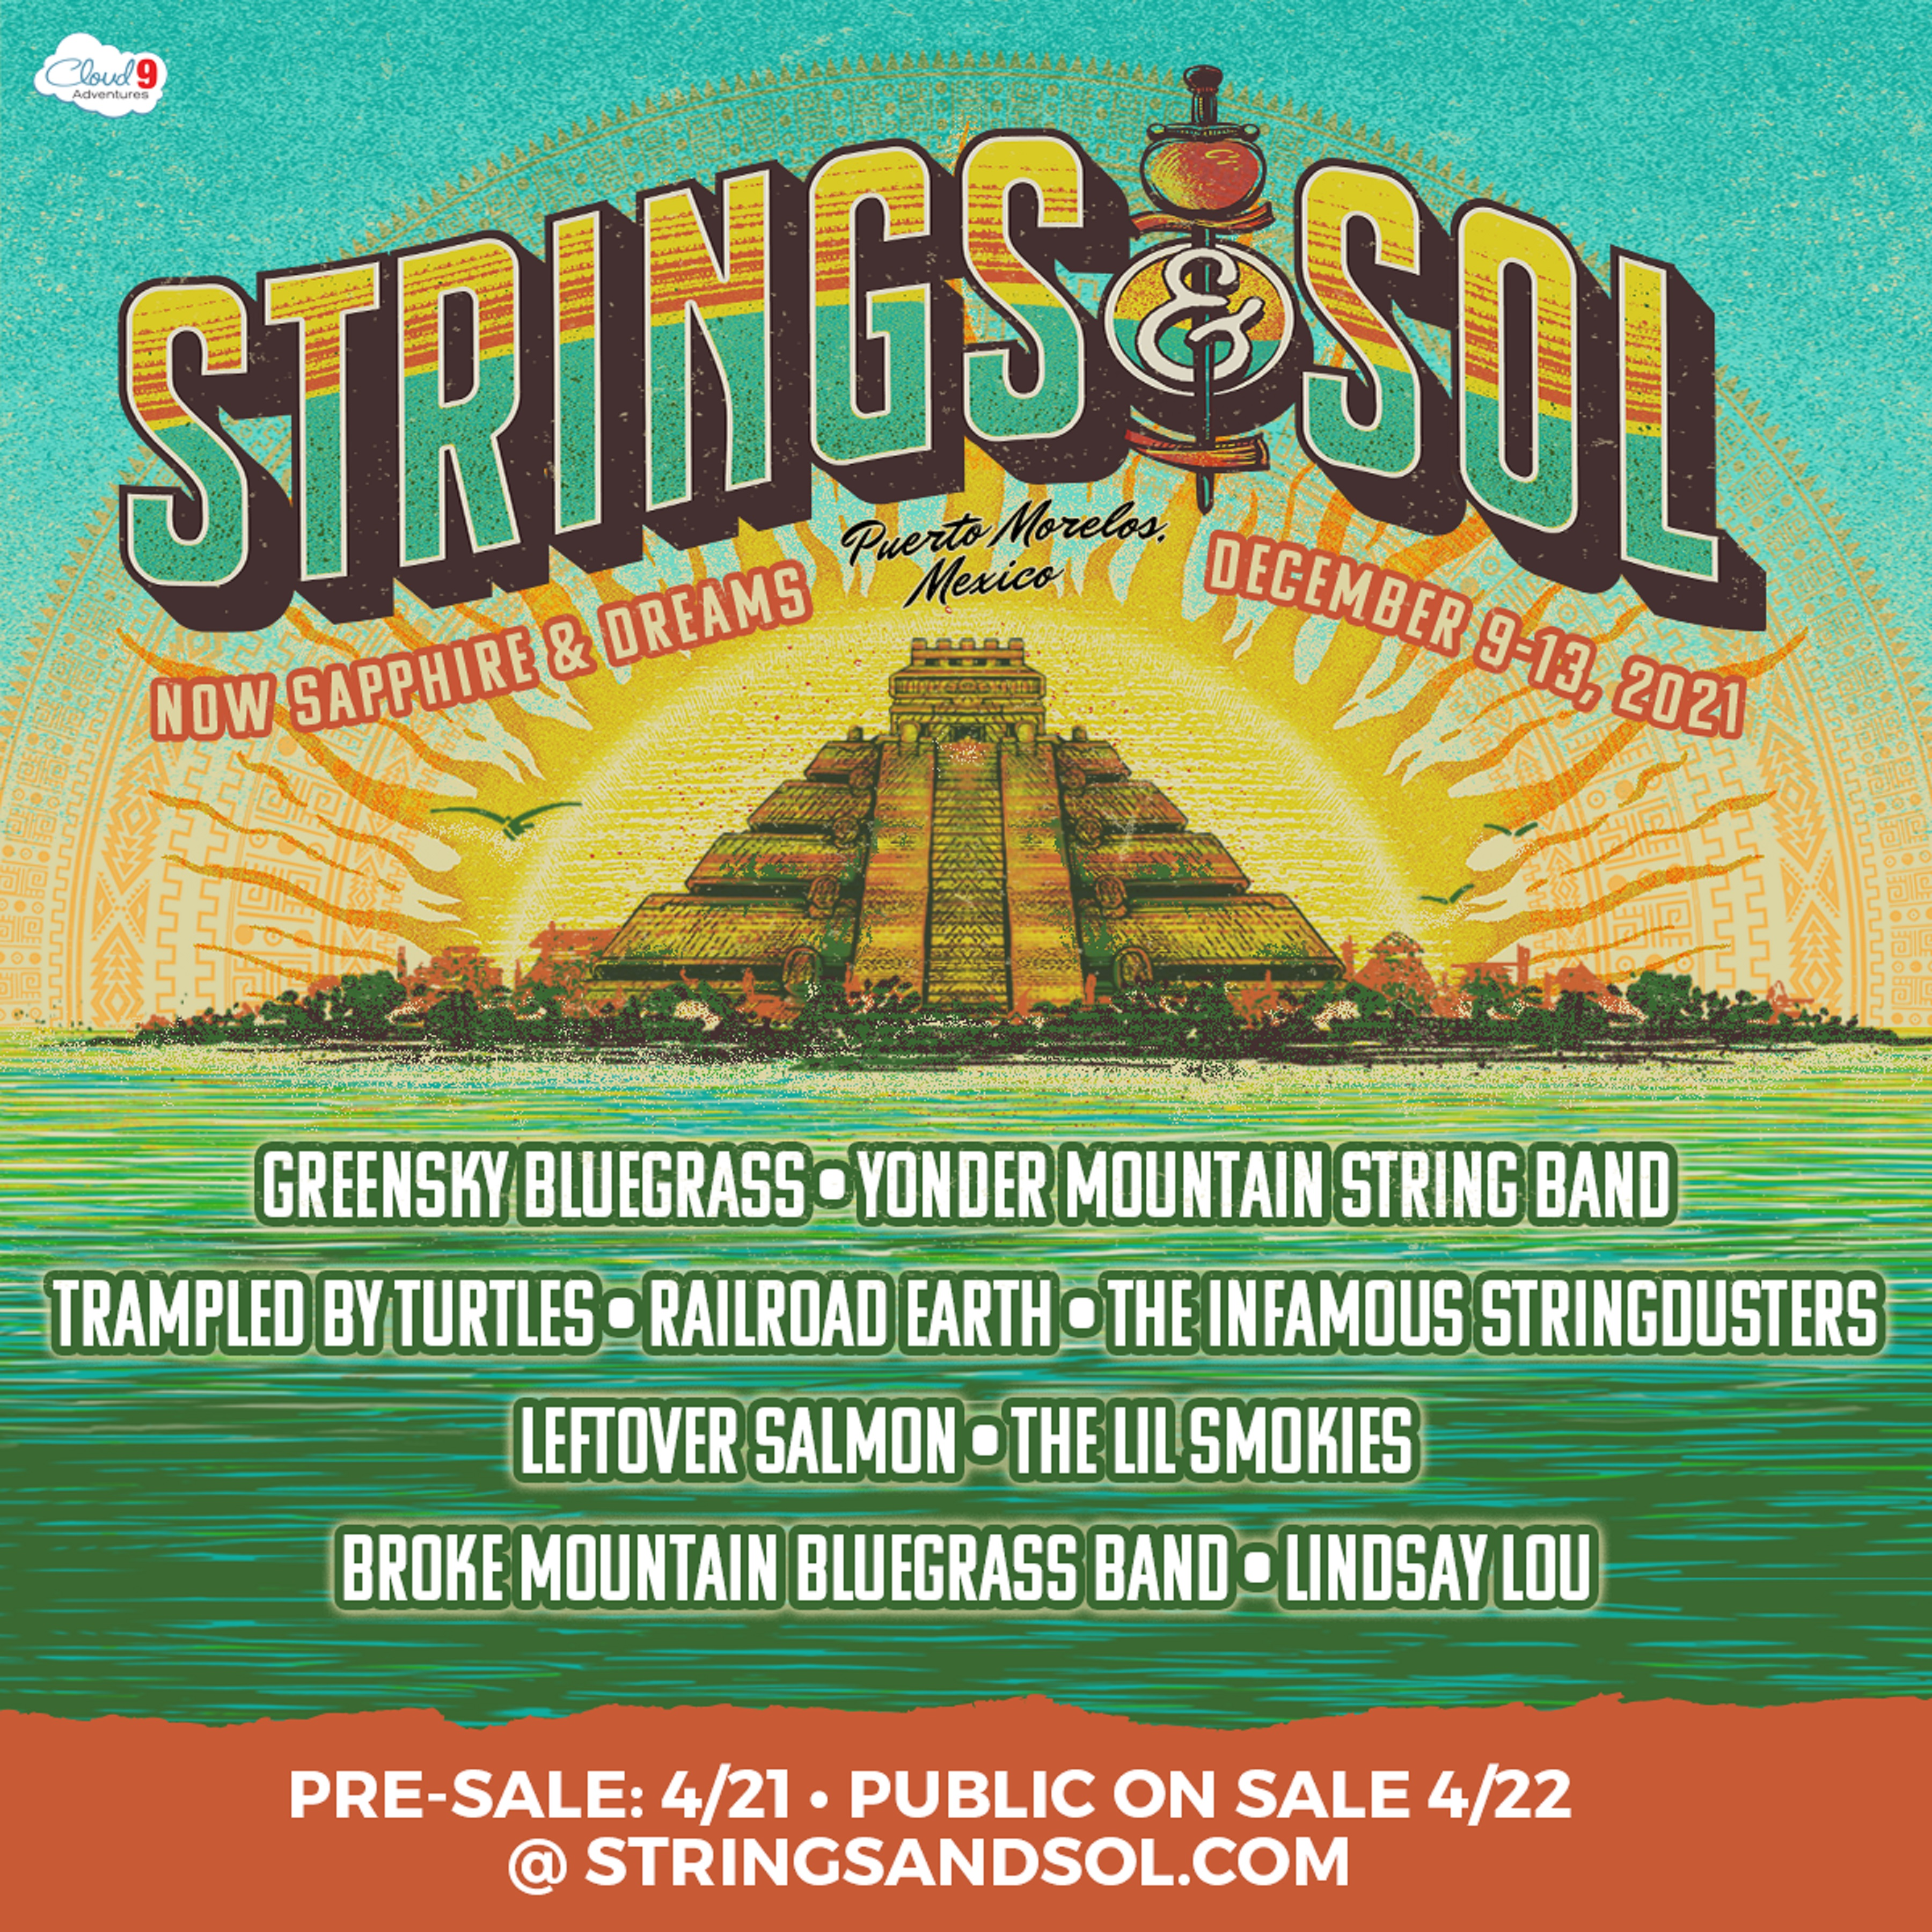 Strings & Sol Announces Lineup and Event Details for All-Inclusive Concert Vacation in Mexico, December 9-13, 2021